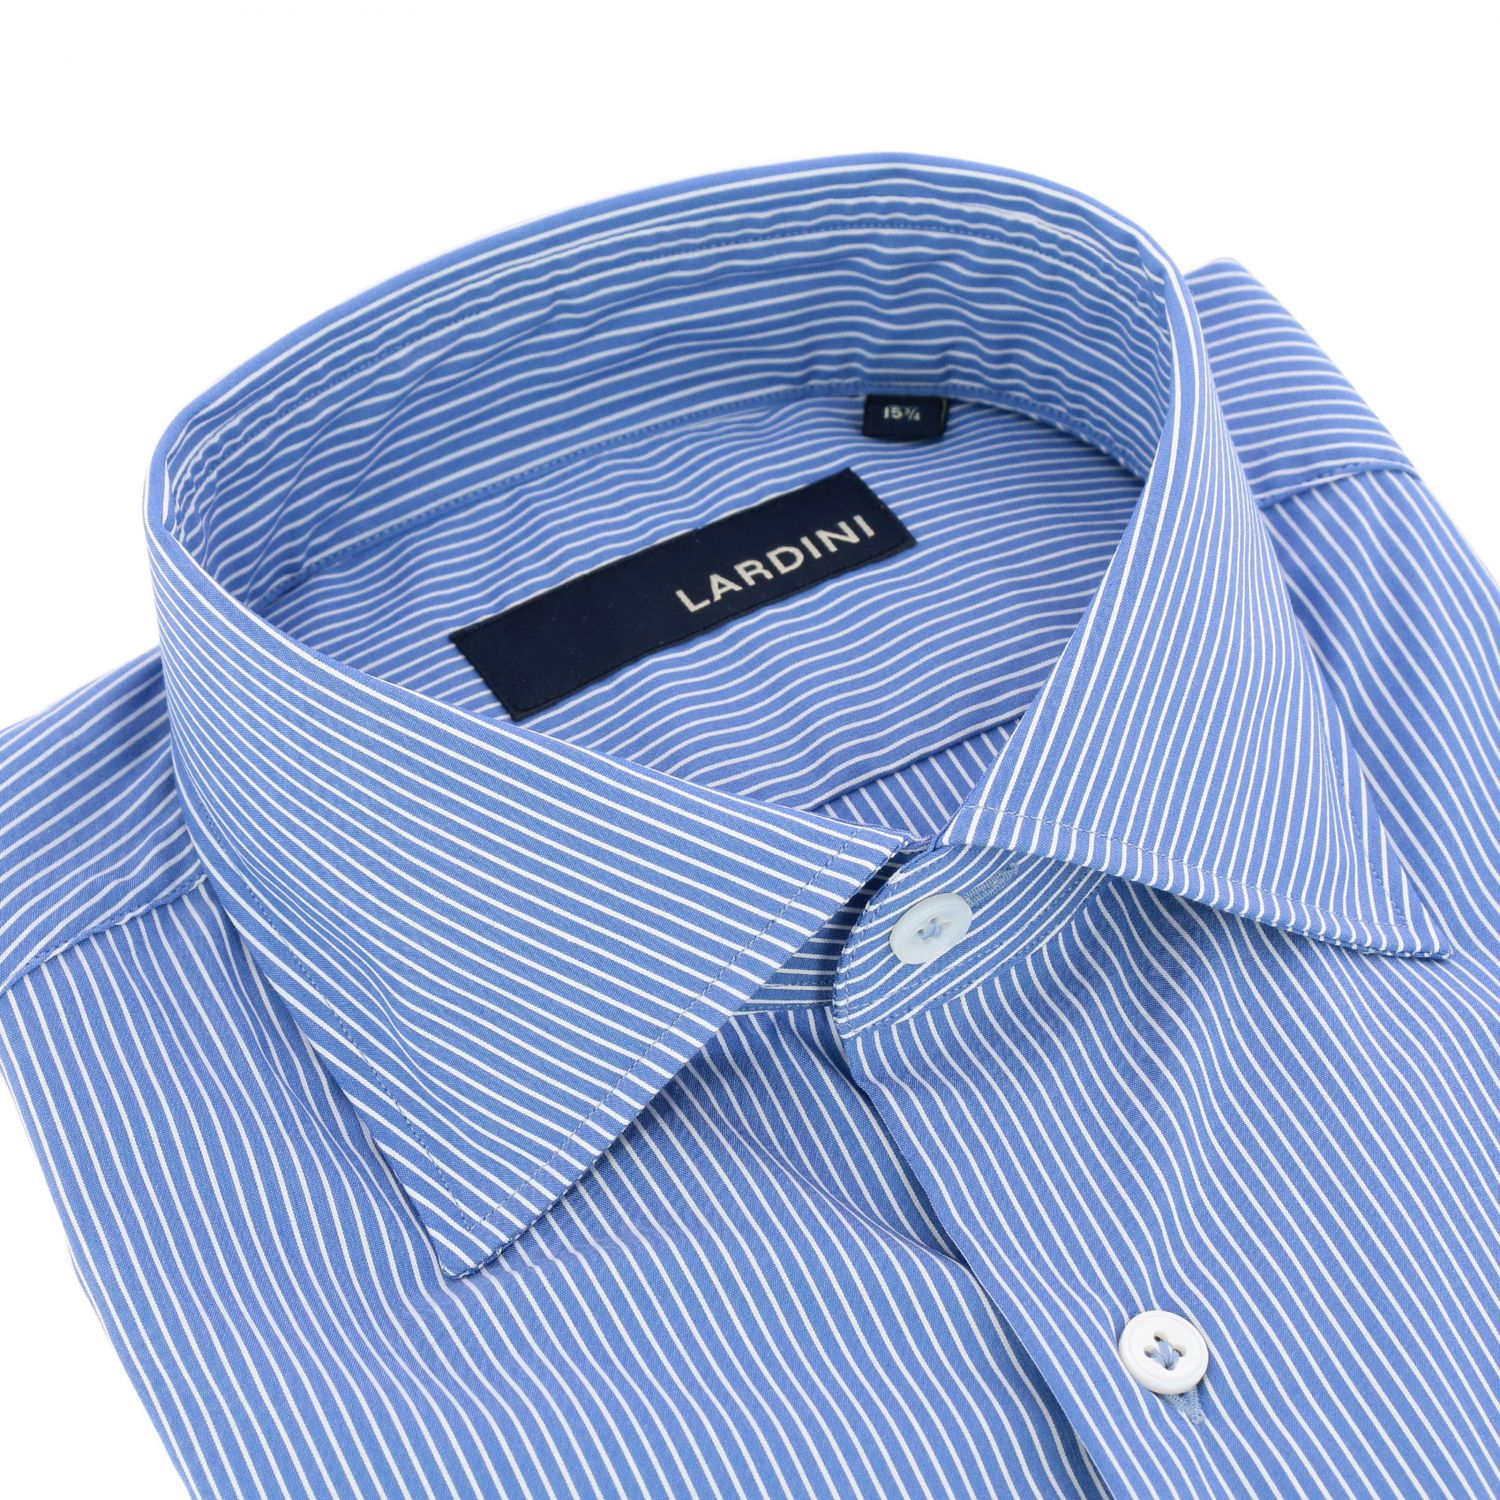 Shirt men Lardini gnawed blue 2